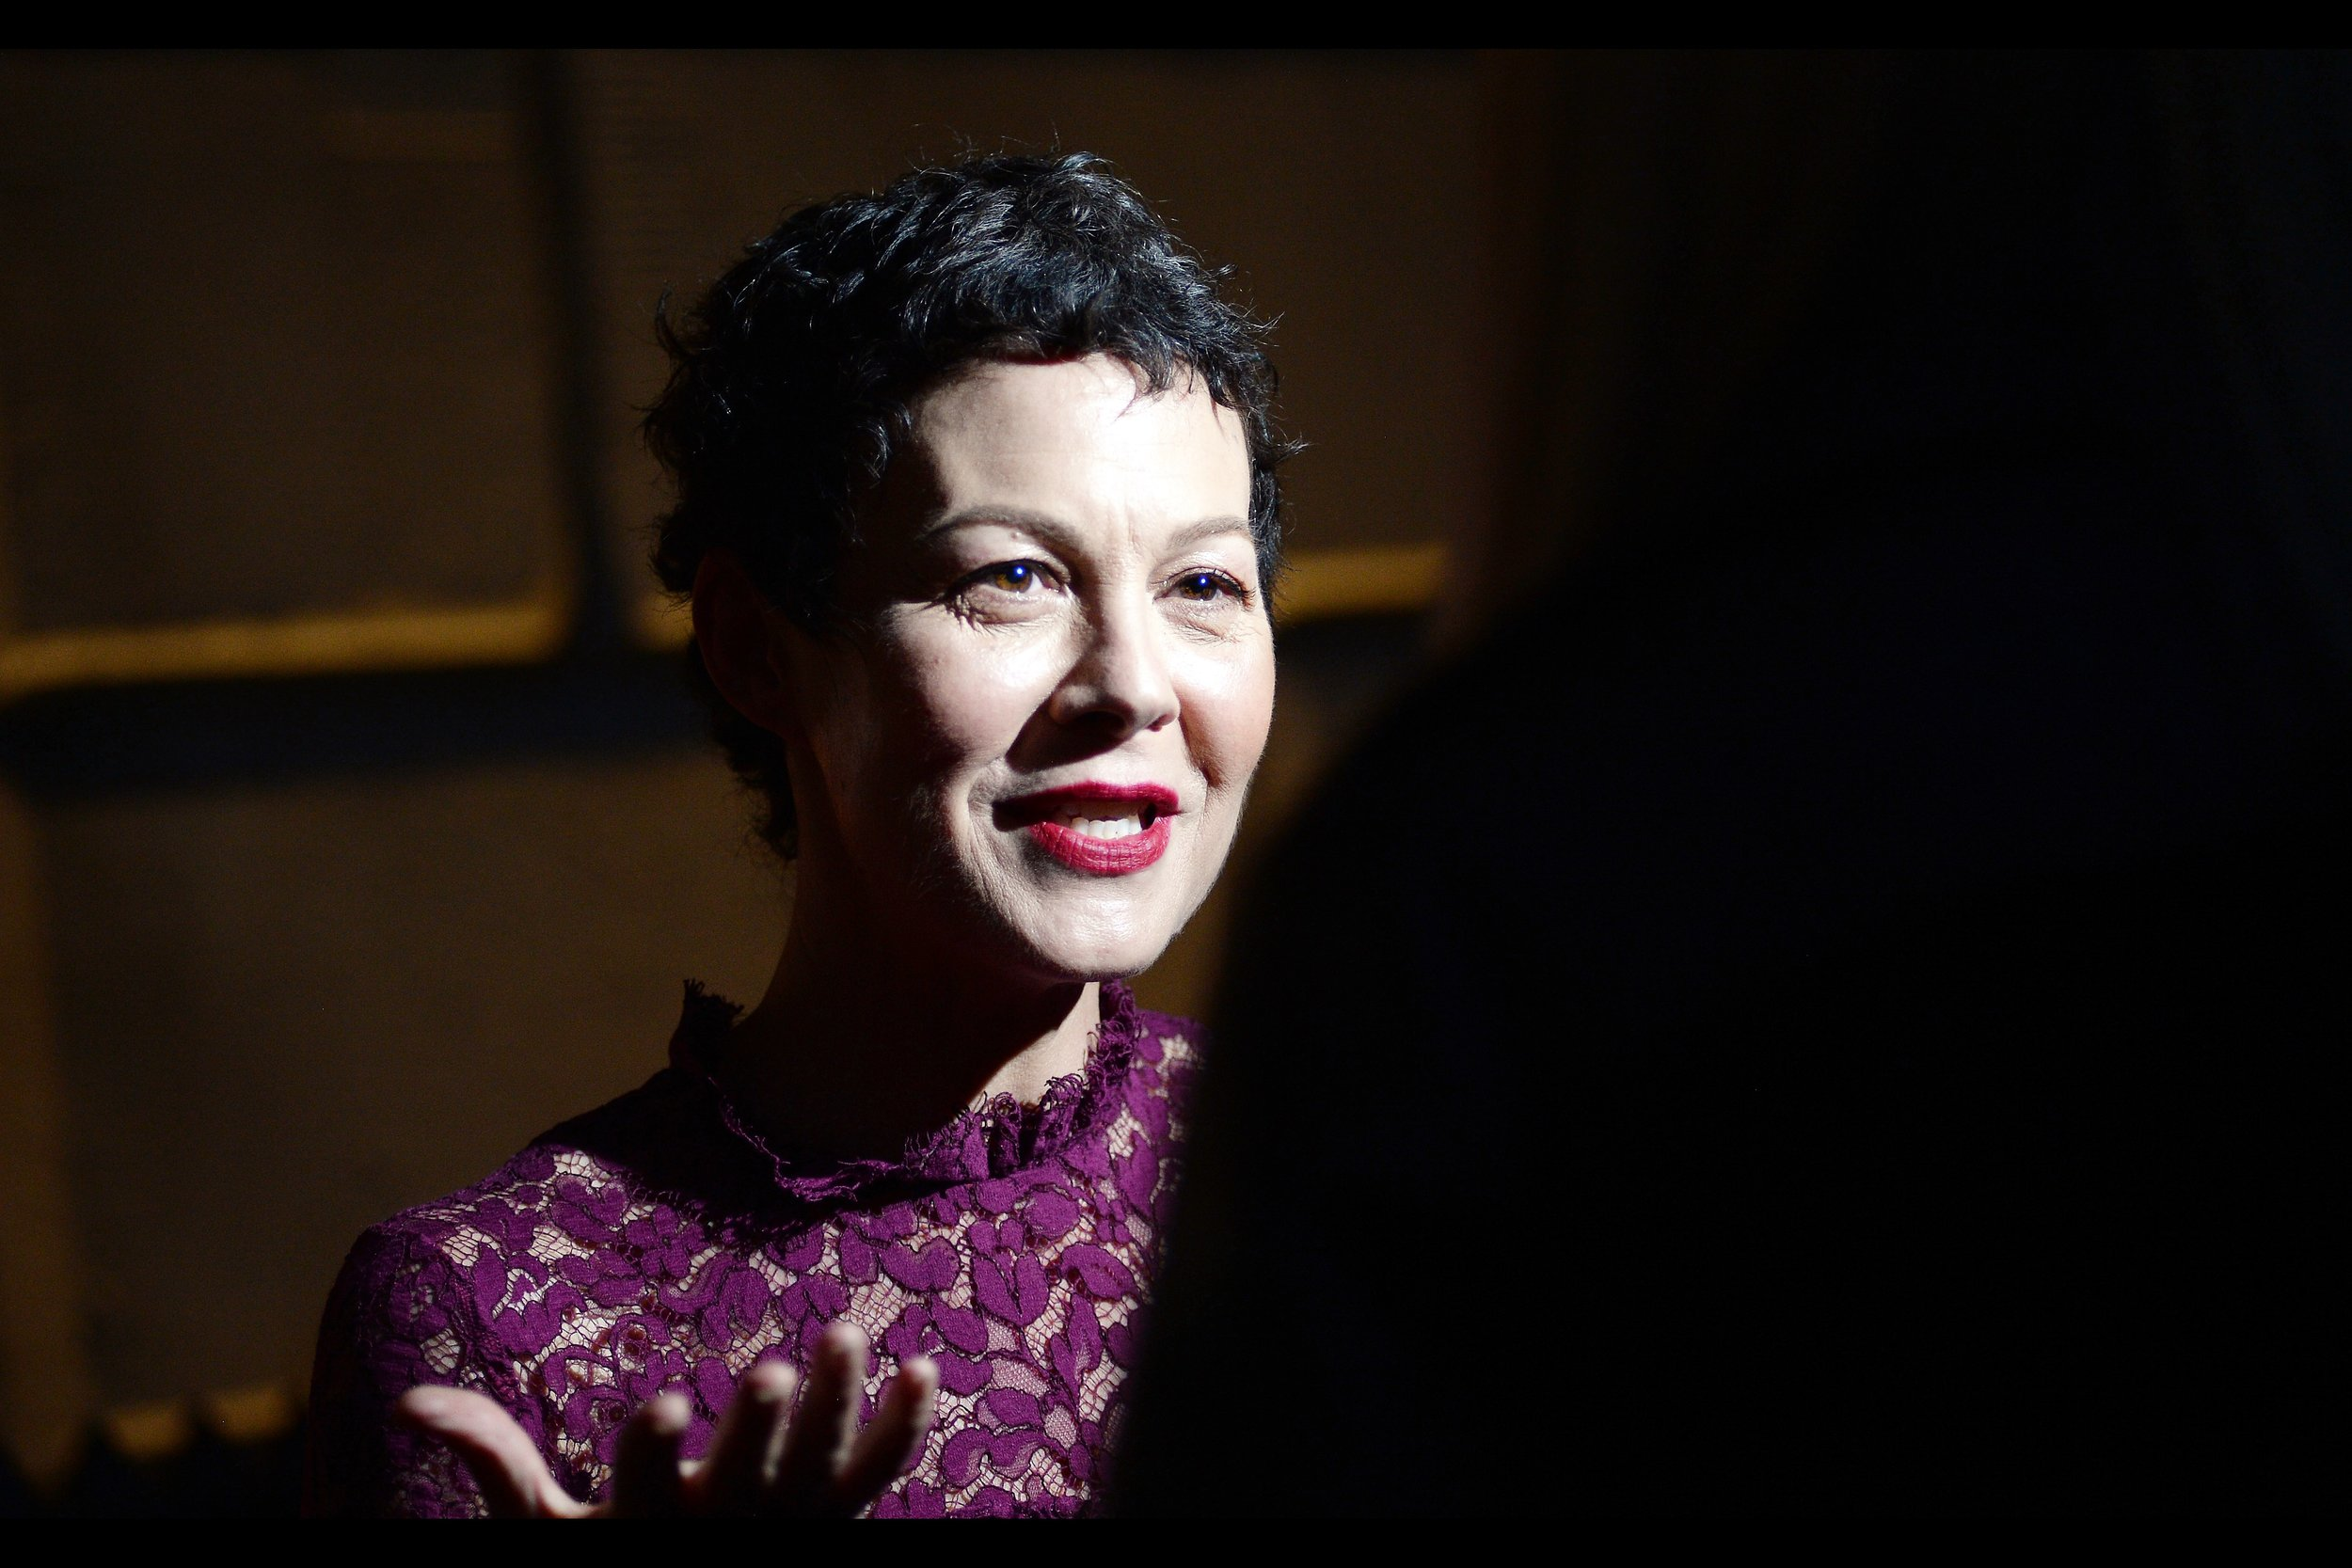 This is Helen McCrory (everyone, do you hear?) - she was in Skyfall, Hugo, and played Narcissa Malfoy in the Harry Potter films. (you're welcome)